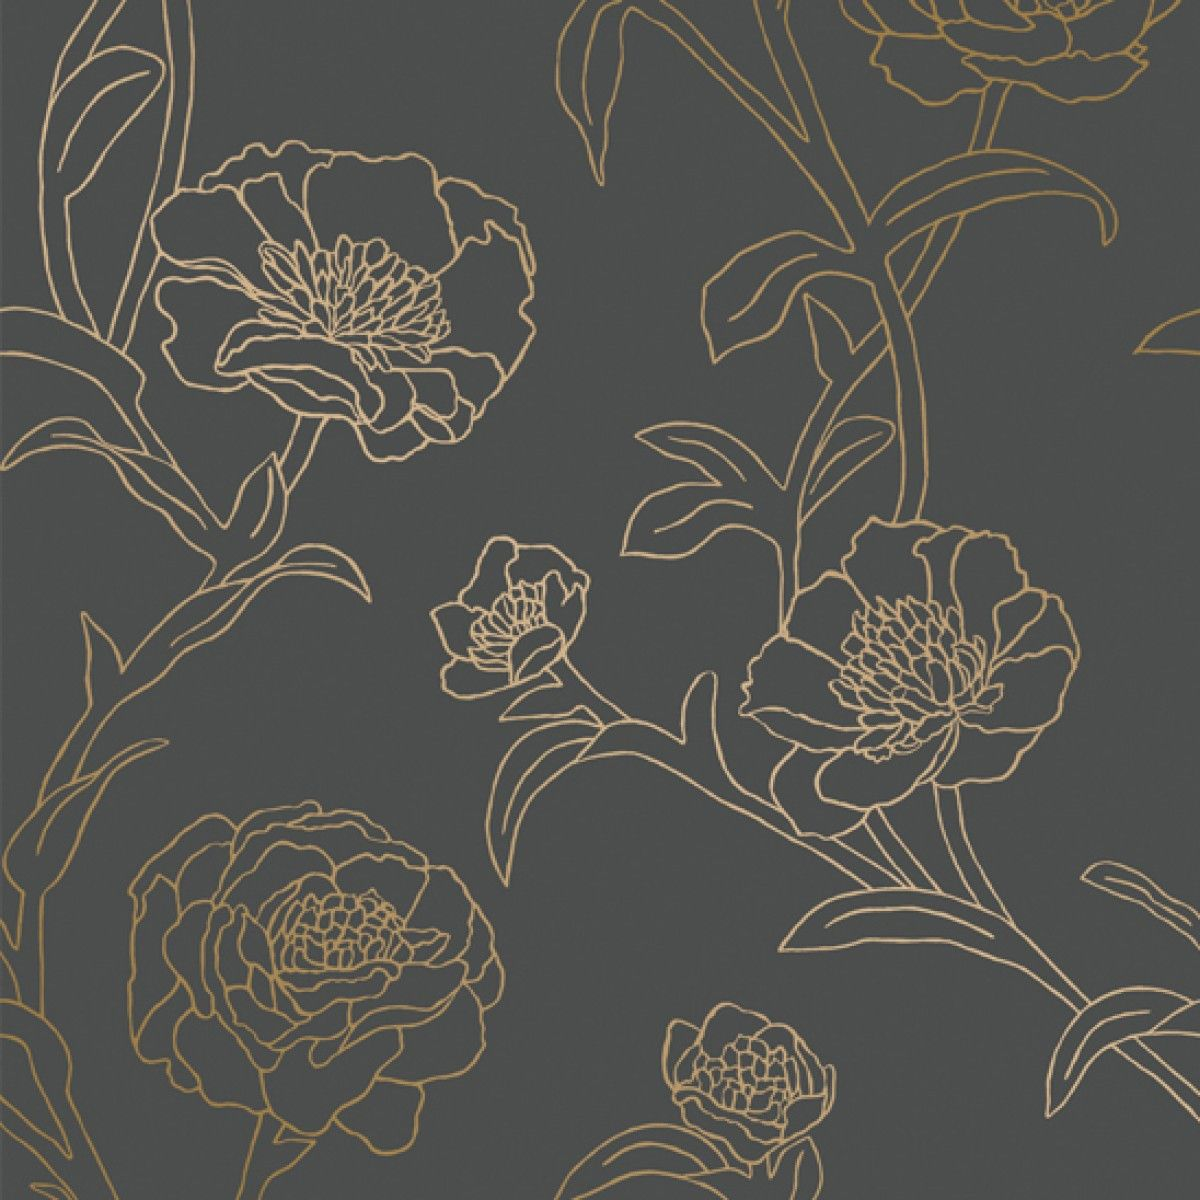 Peonies Self Adhesive Wallpaper In Noir Design By Tempaper In 2021 Blue And Gold Wallpaper Peony Wallpaper Removable Wallpaper